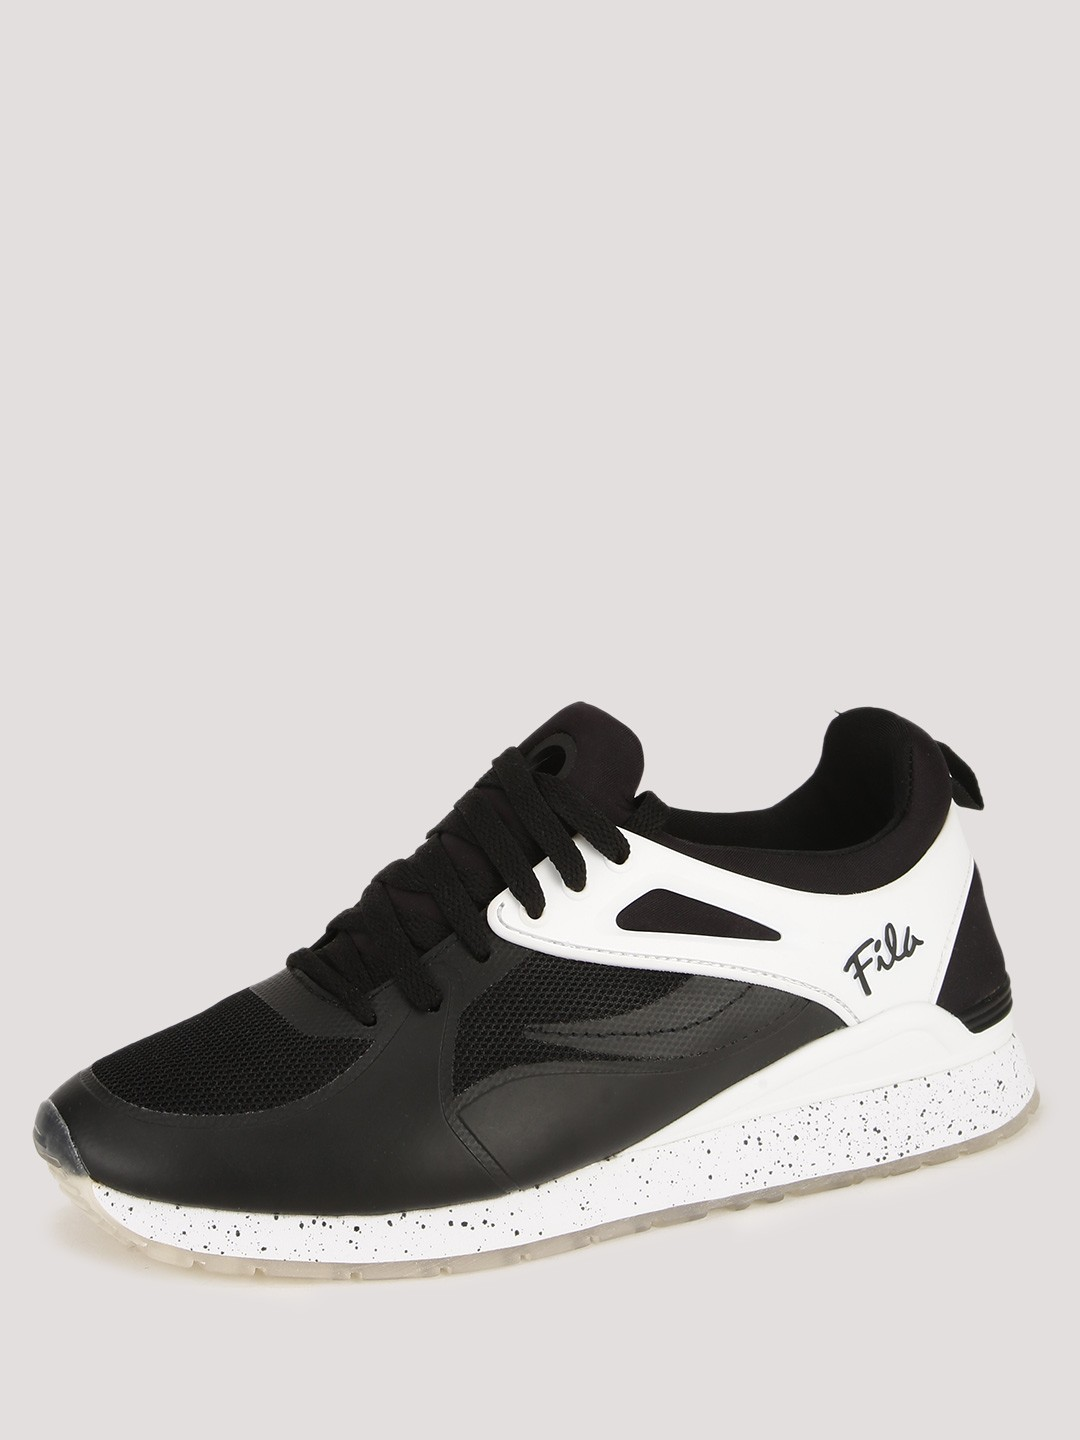 Buy Fila Black Overpass 2 0 Fusion Trainers With Speckled